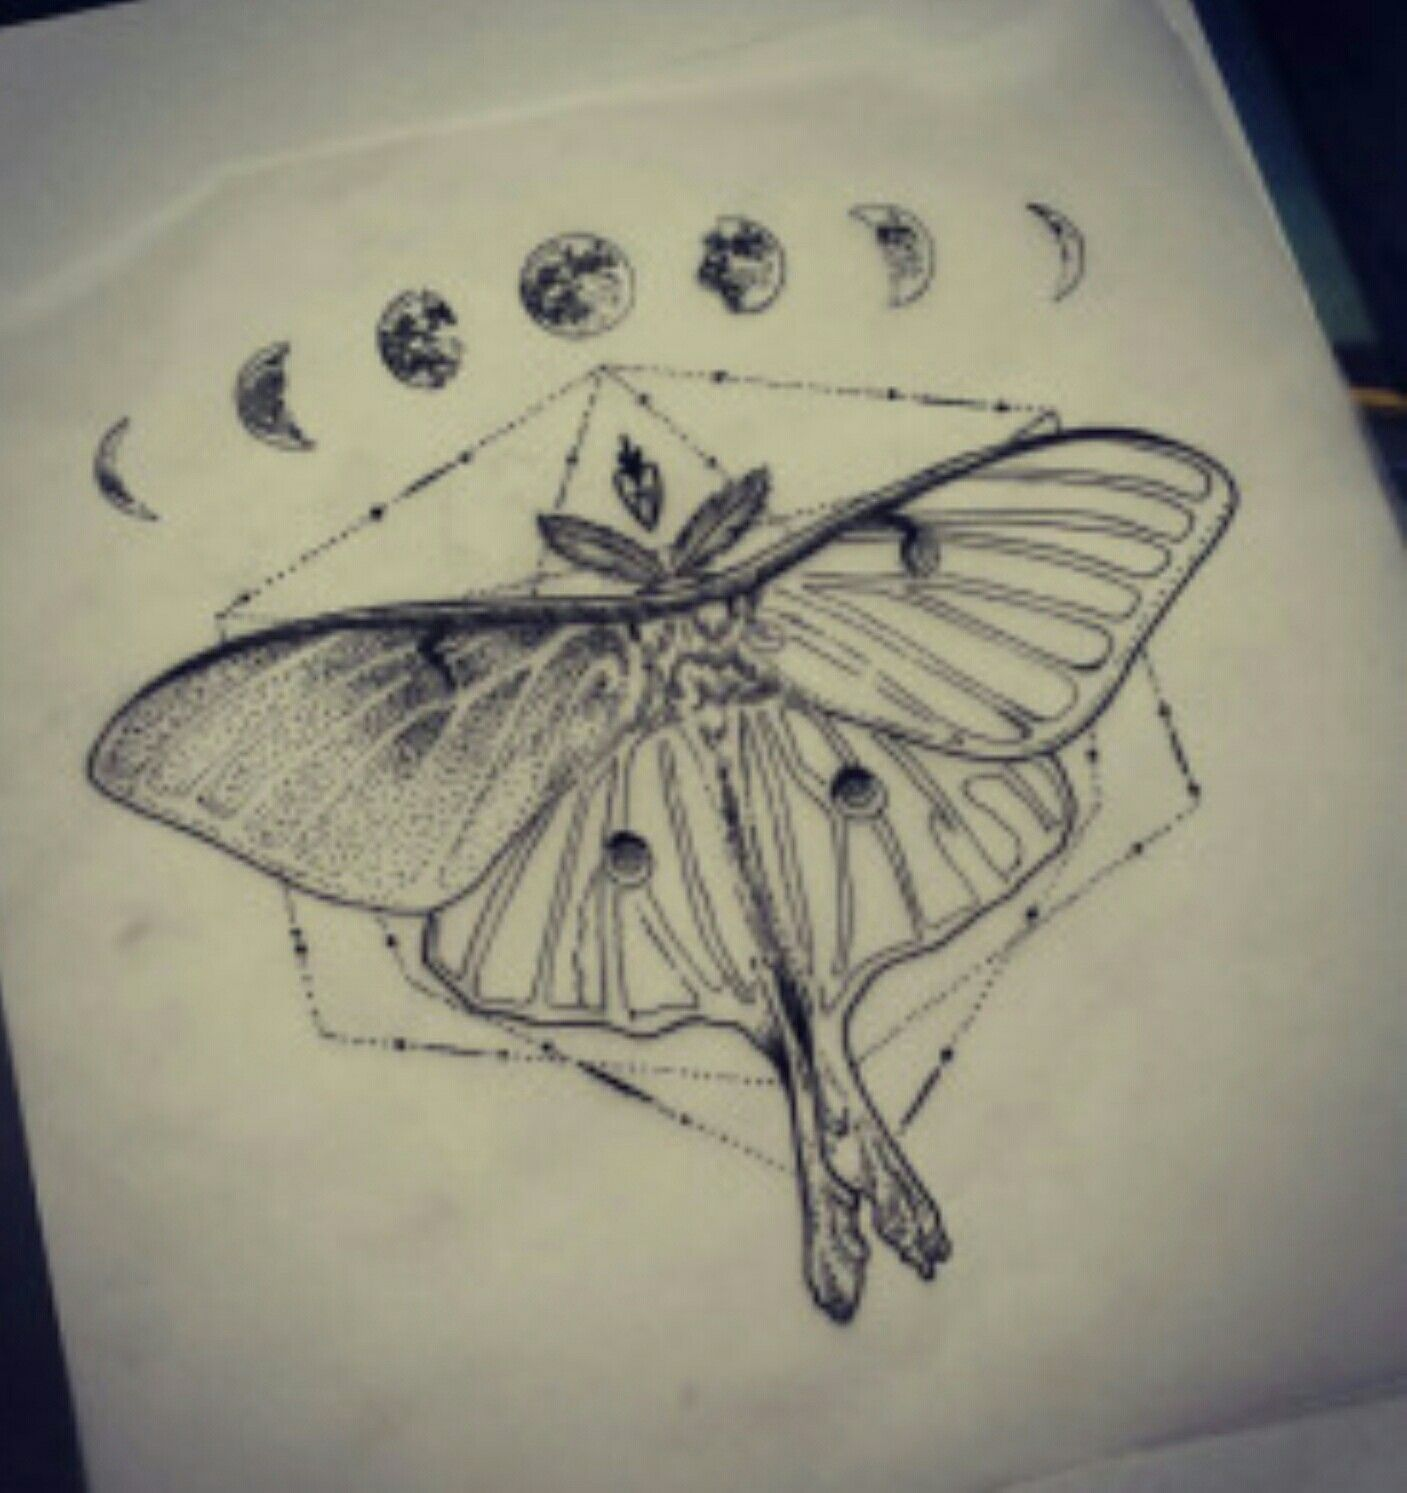 78260a230 #armtattoosmeaning Moth Tattoo Meaning, Arm Tattoos With Meaning, Moth  Drawing, Alchemy Tattoo